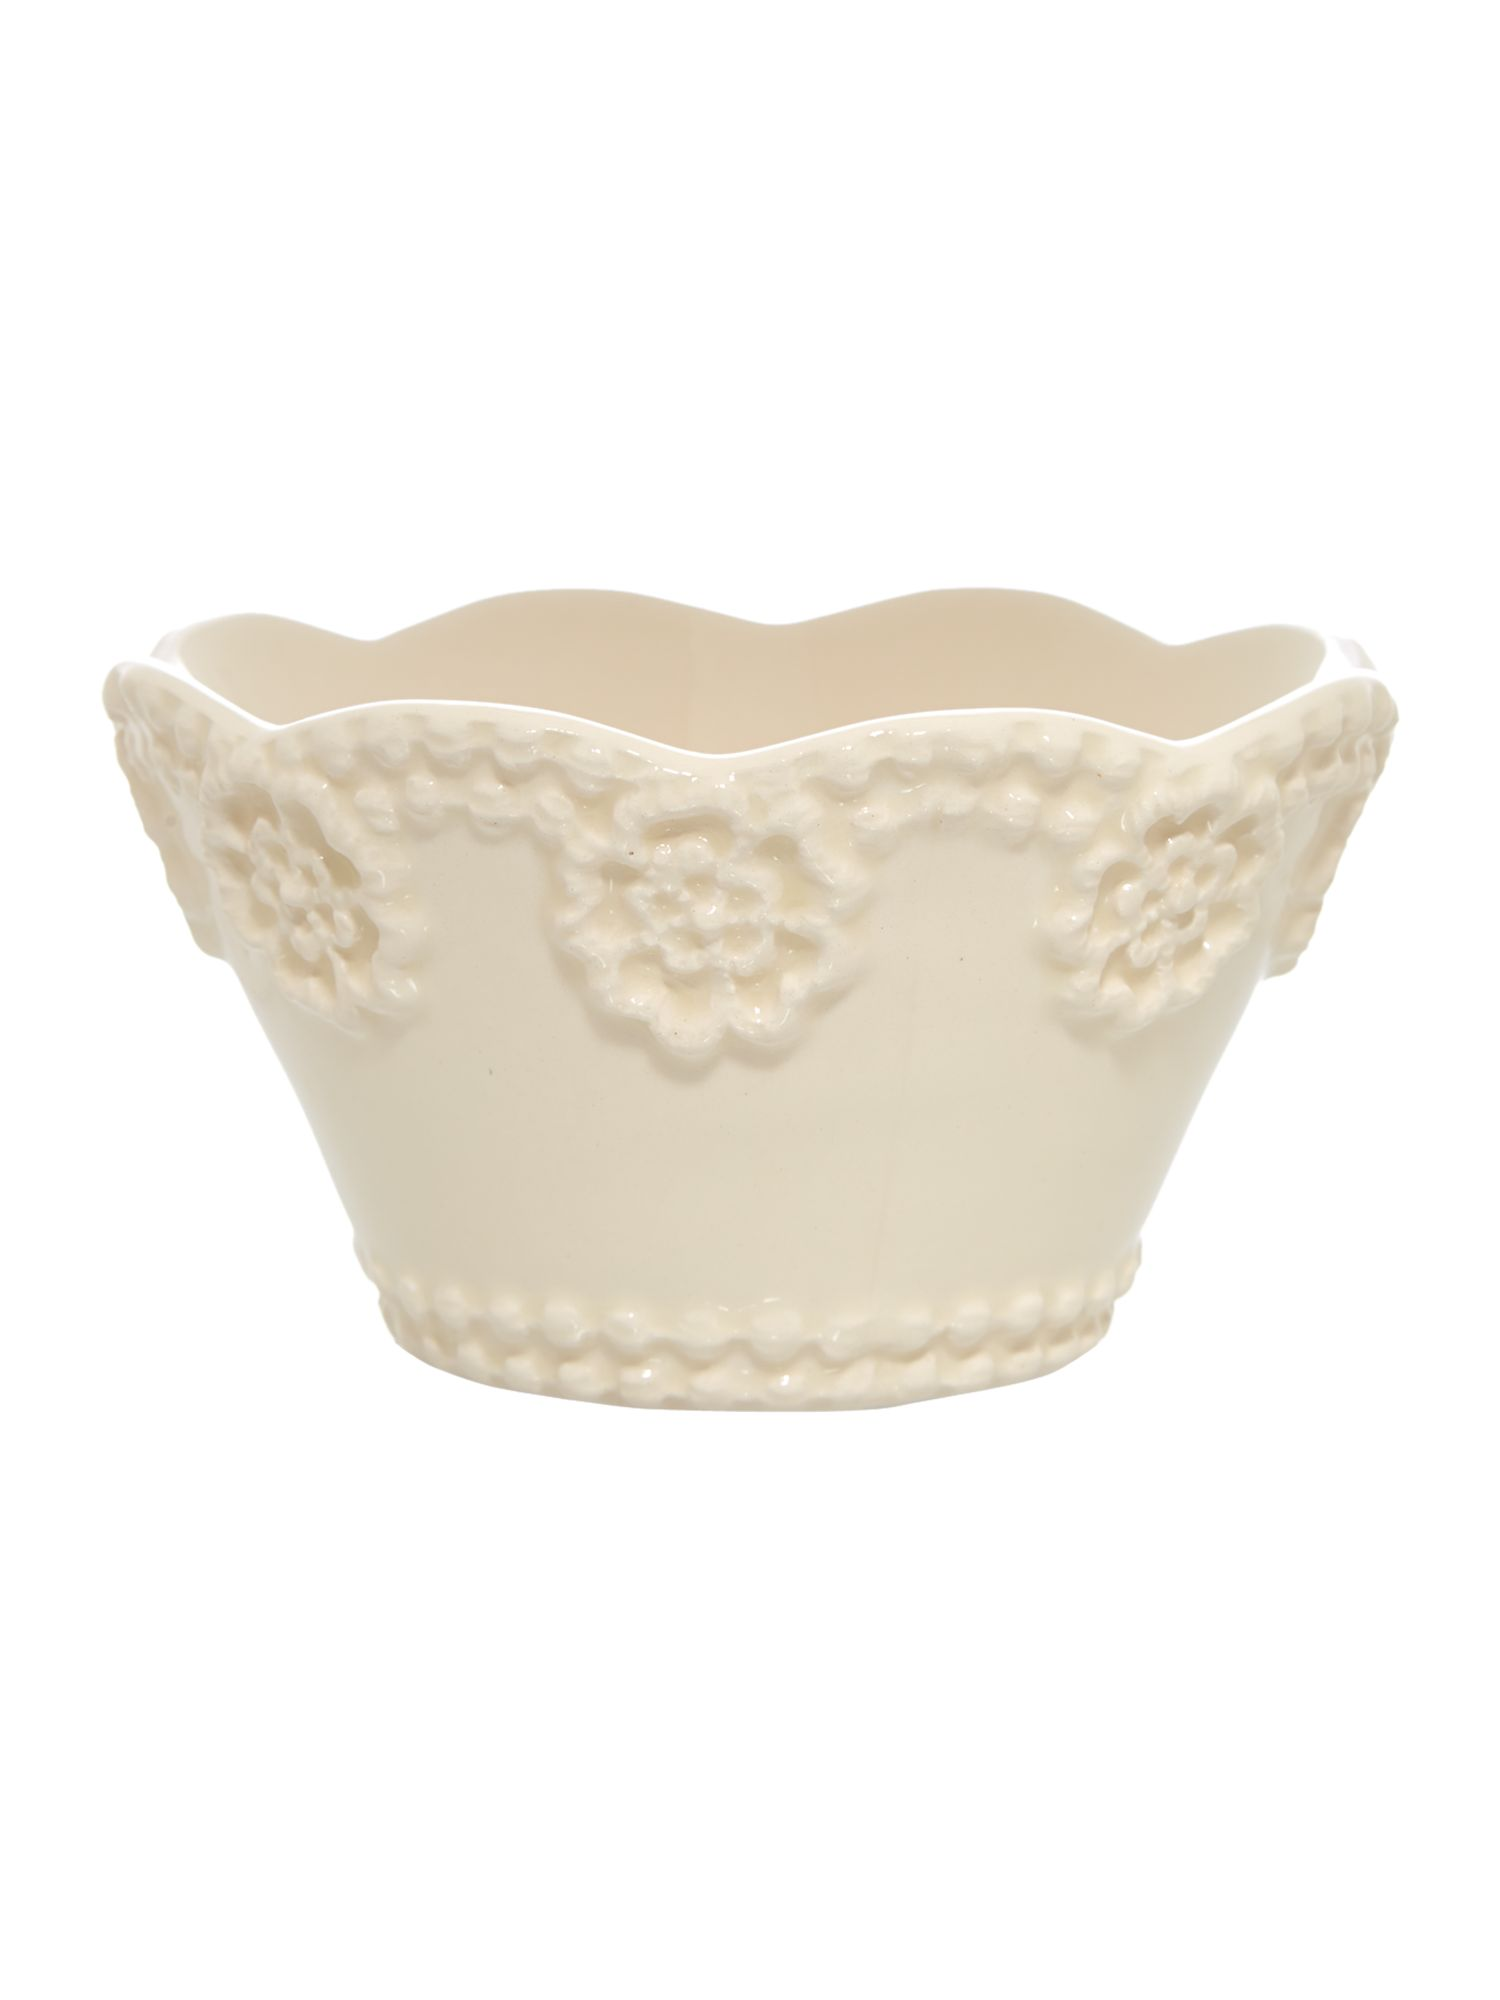 Lace cereal bowl